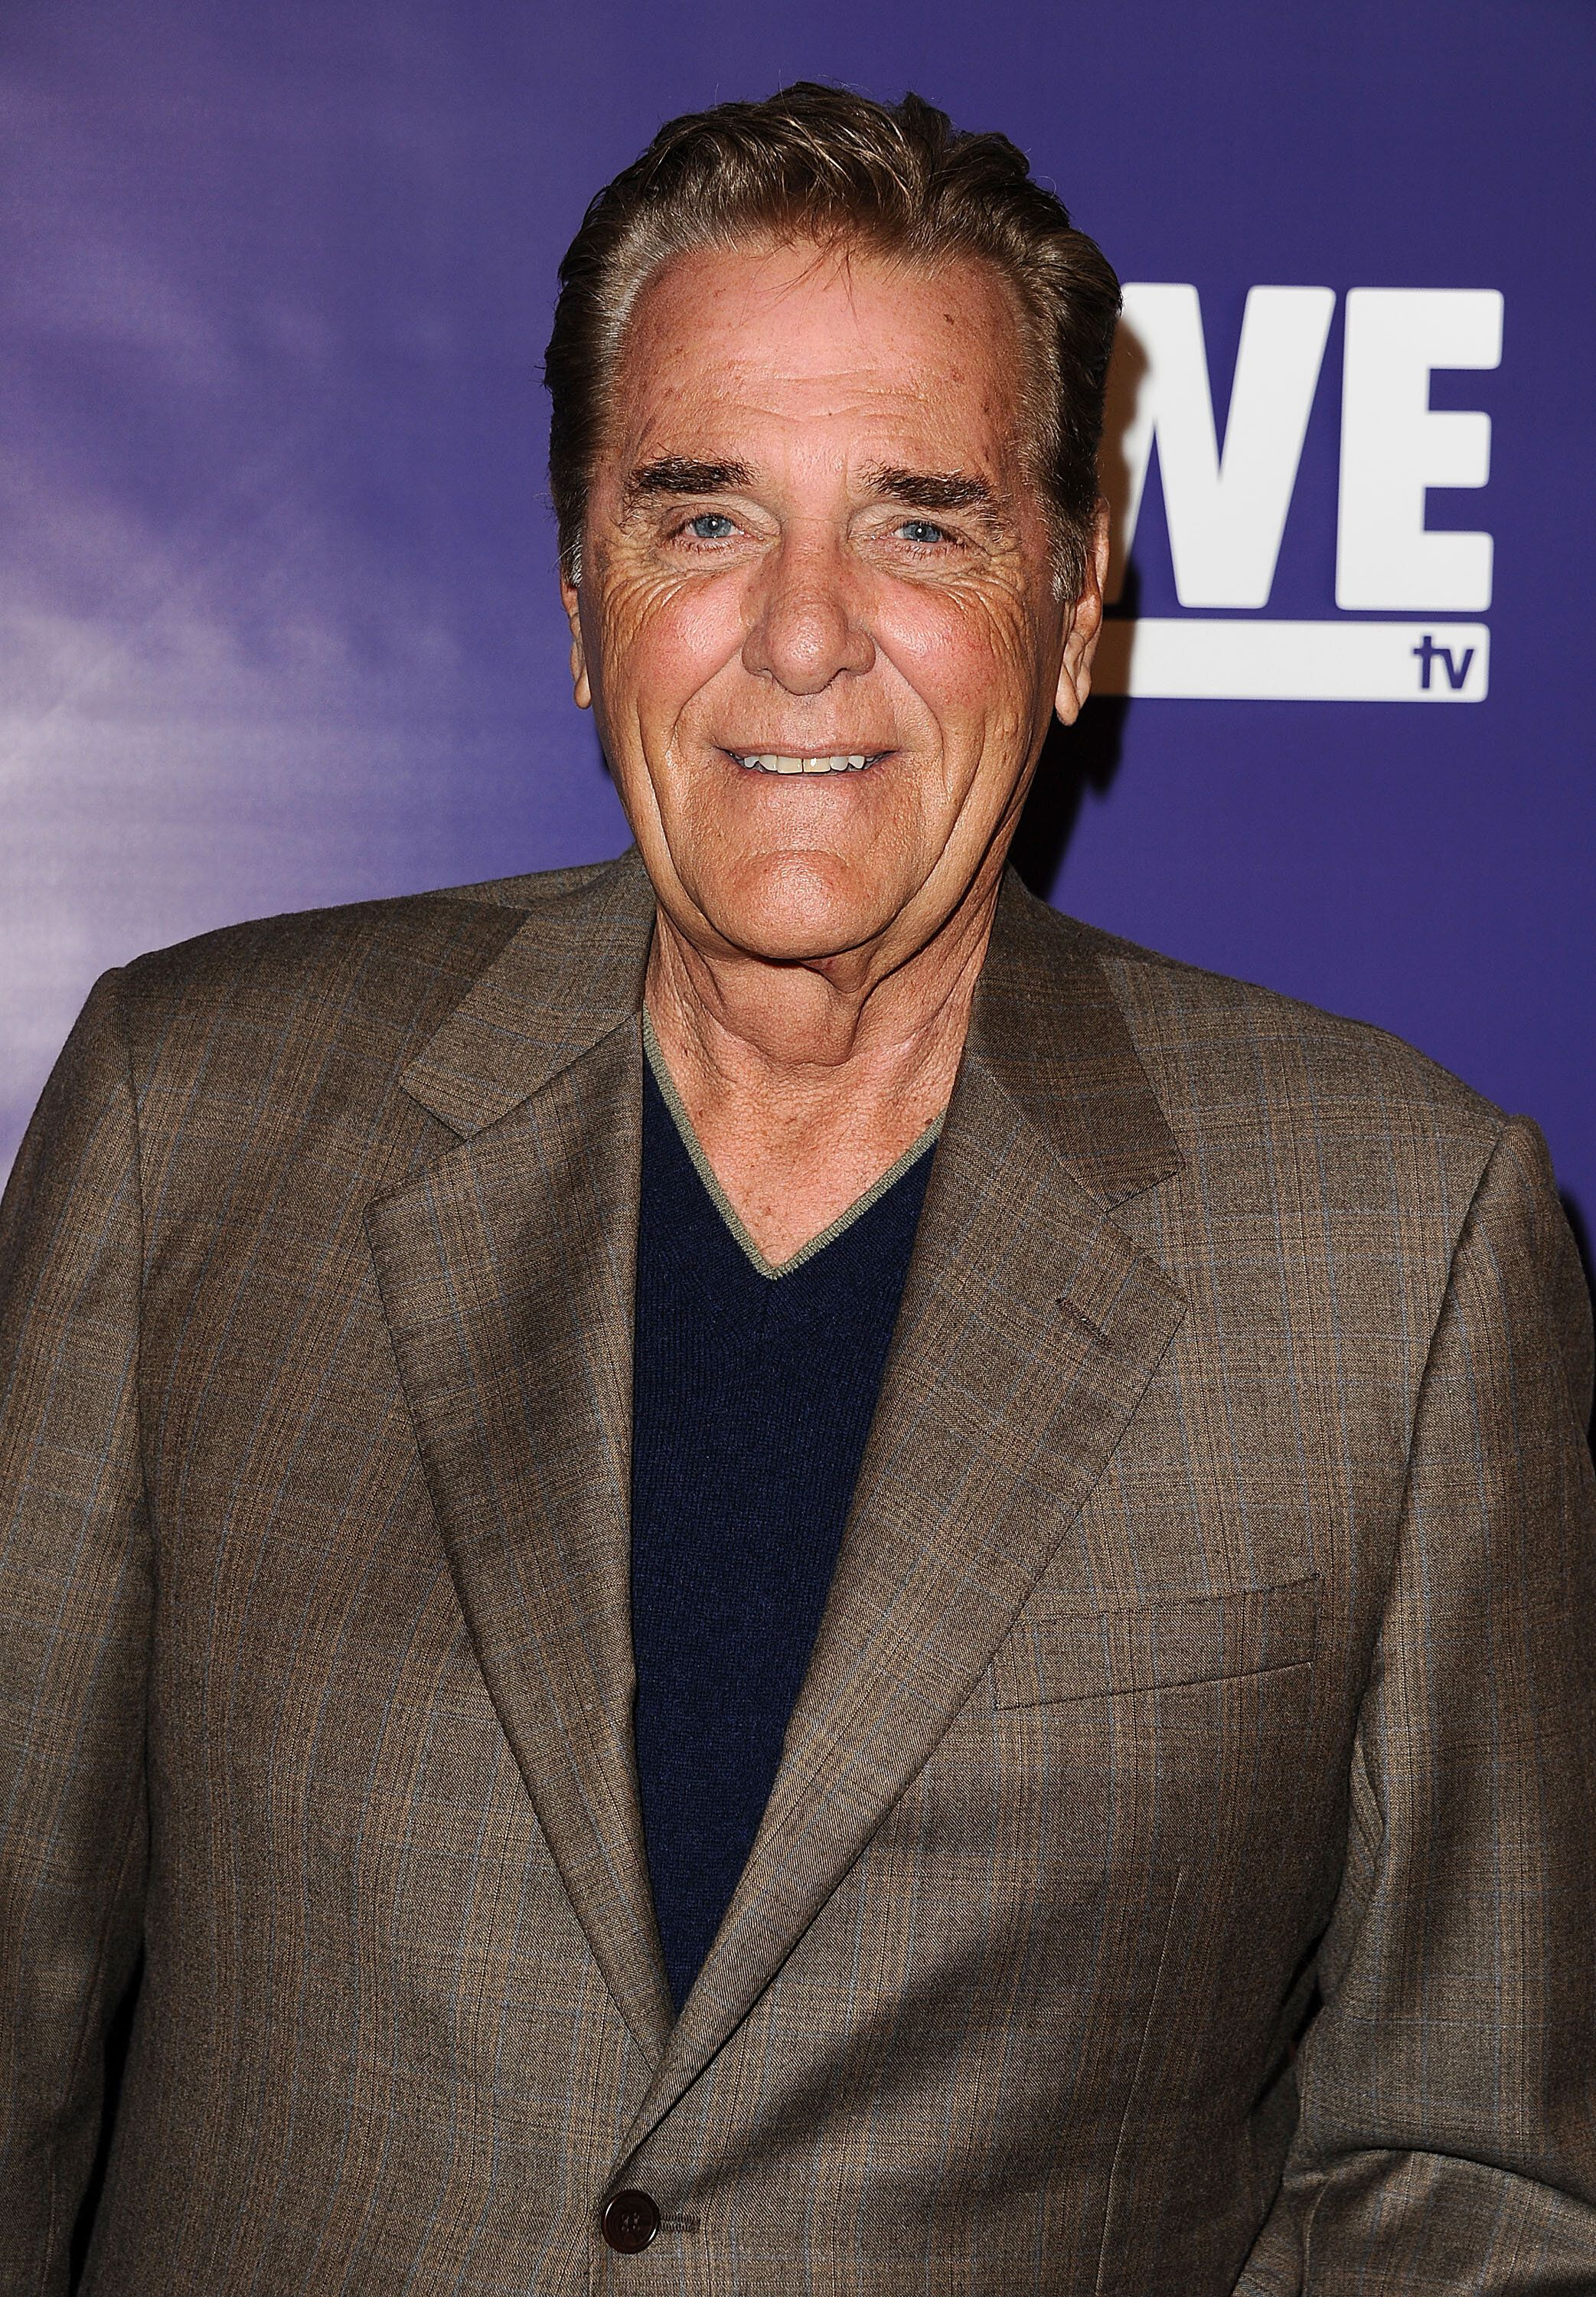 Chuck Woolery S Hot Take On Racism Goes Viral For The